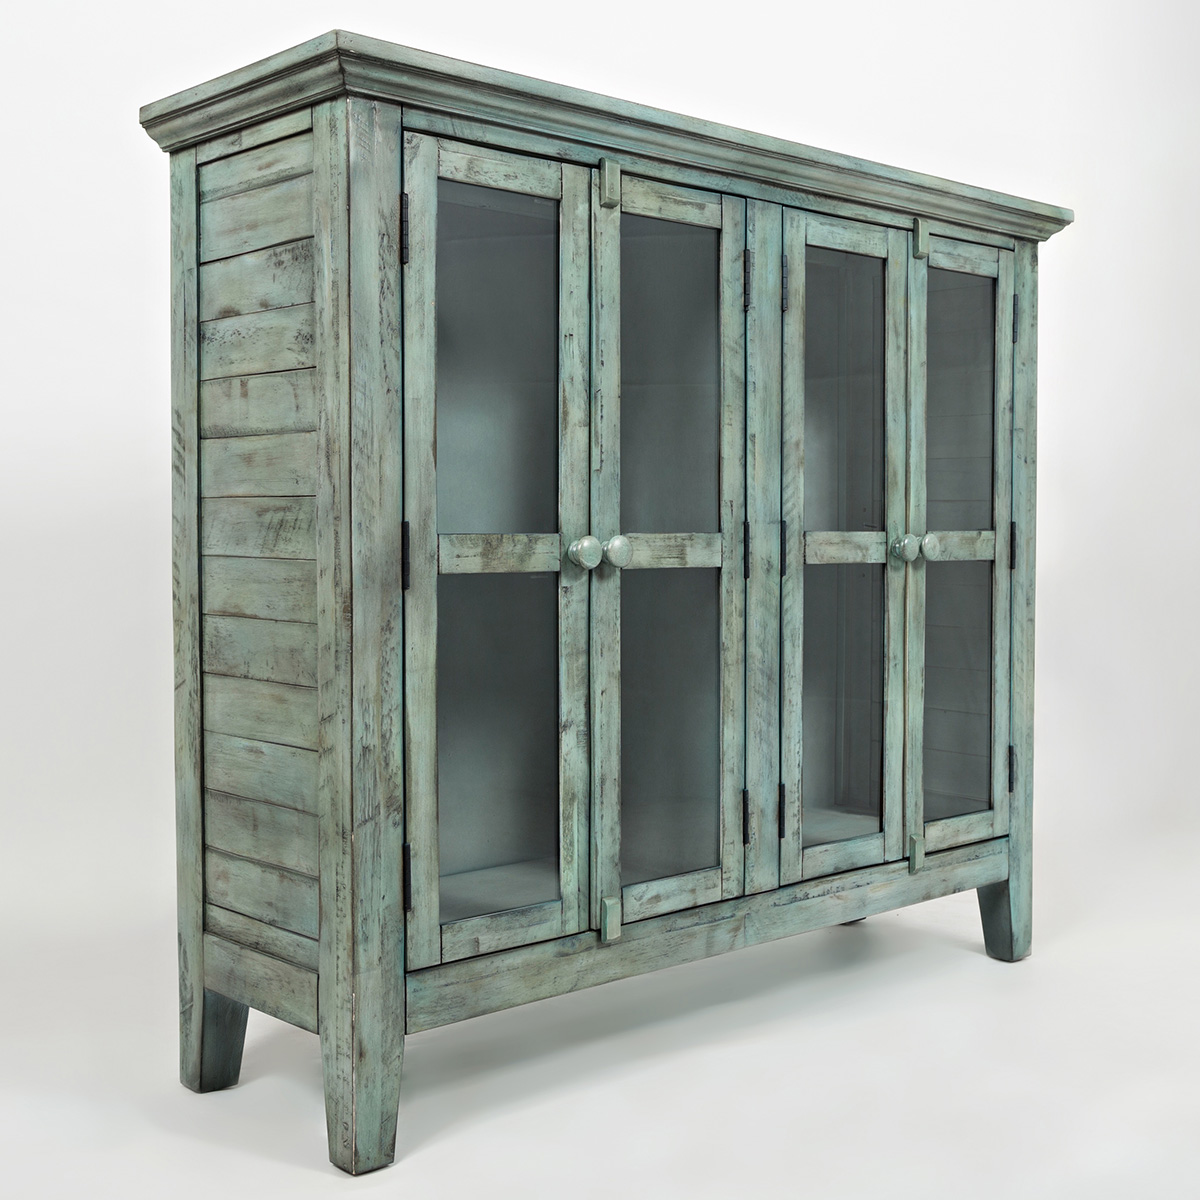 Accent cabinet with glass doors - Rustic Shores Surfside 48 Accent Cabinet In Distressed Vintage Blue W Glass Doors